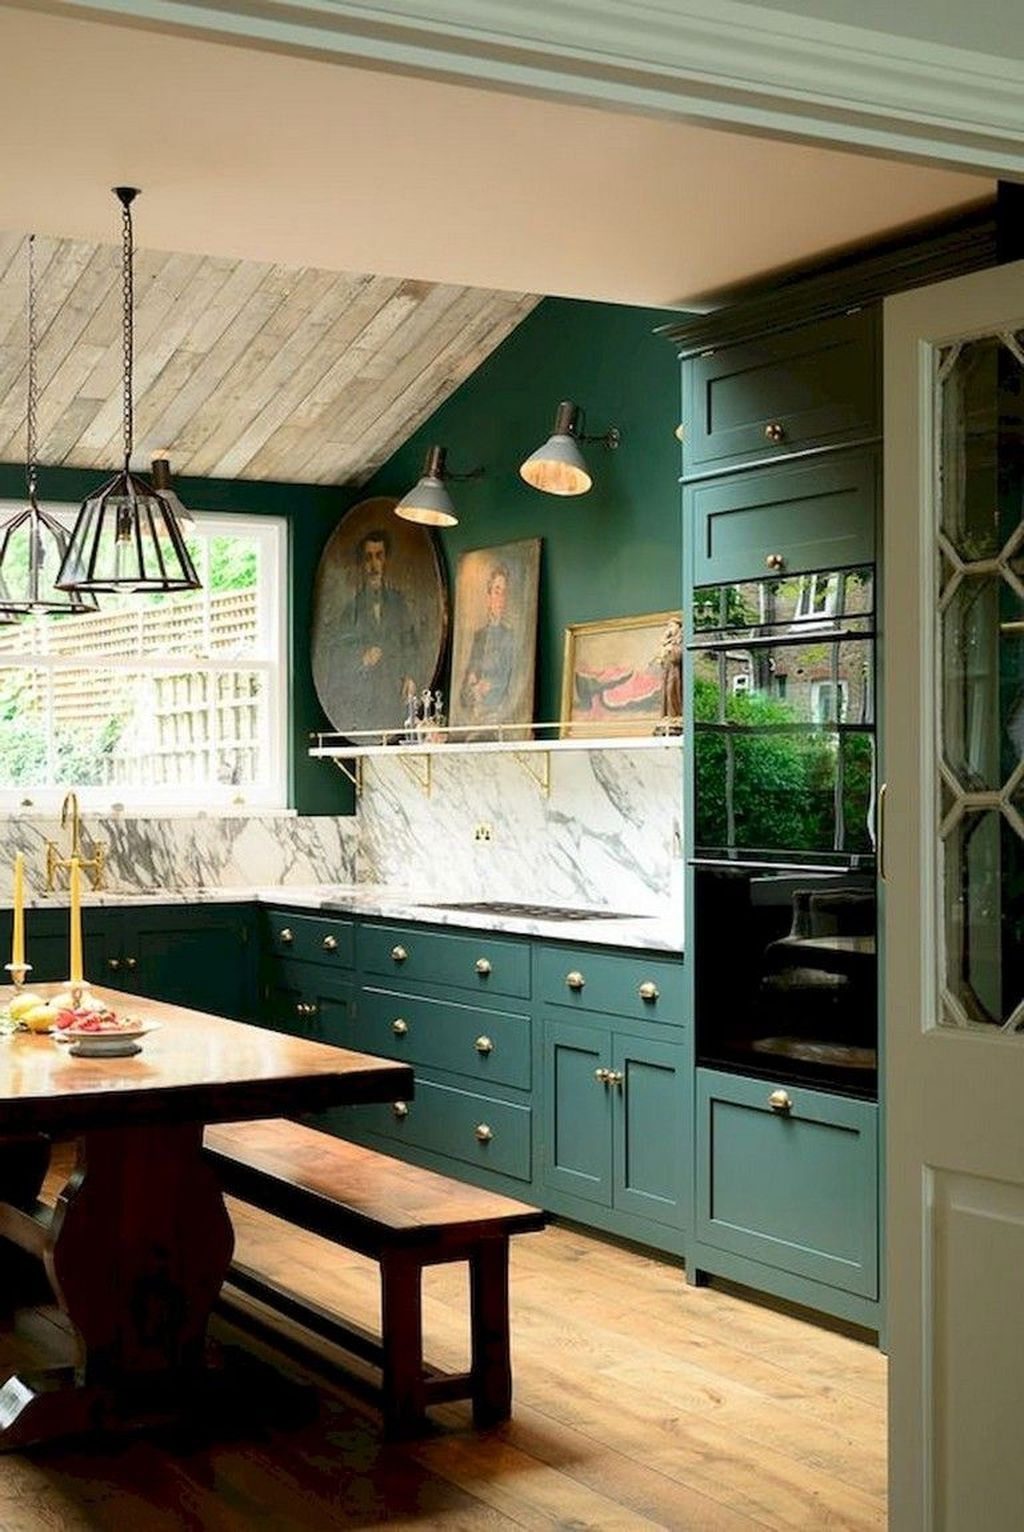 47 beautiful and cozy green kitchen ideas in 2020 rustic on the most beautiful kitchens ever id=89049